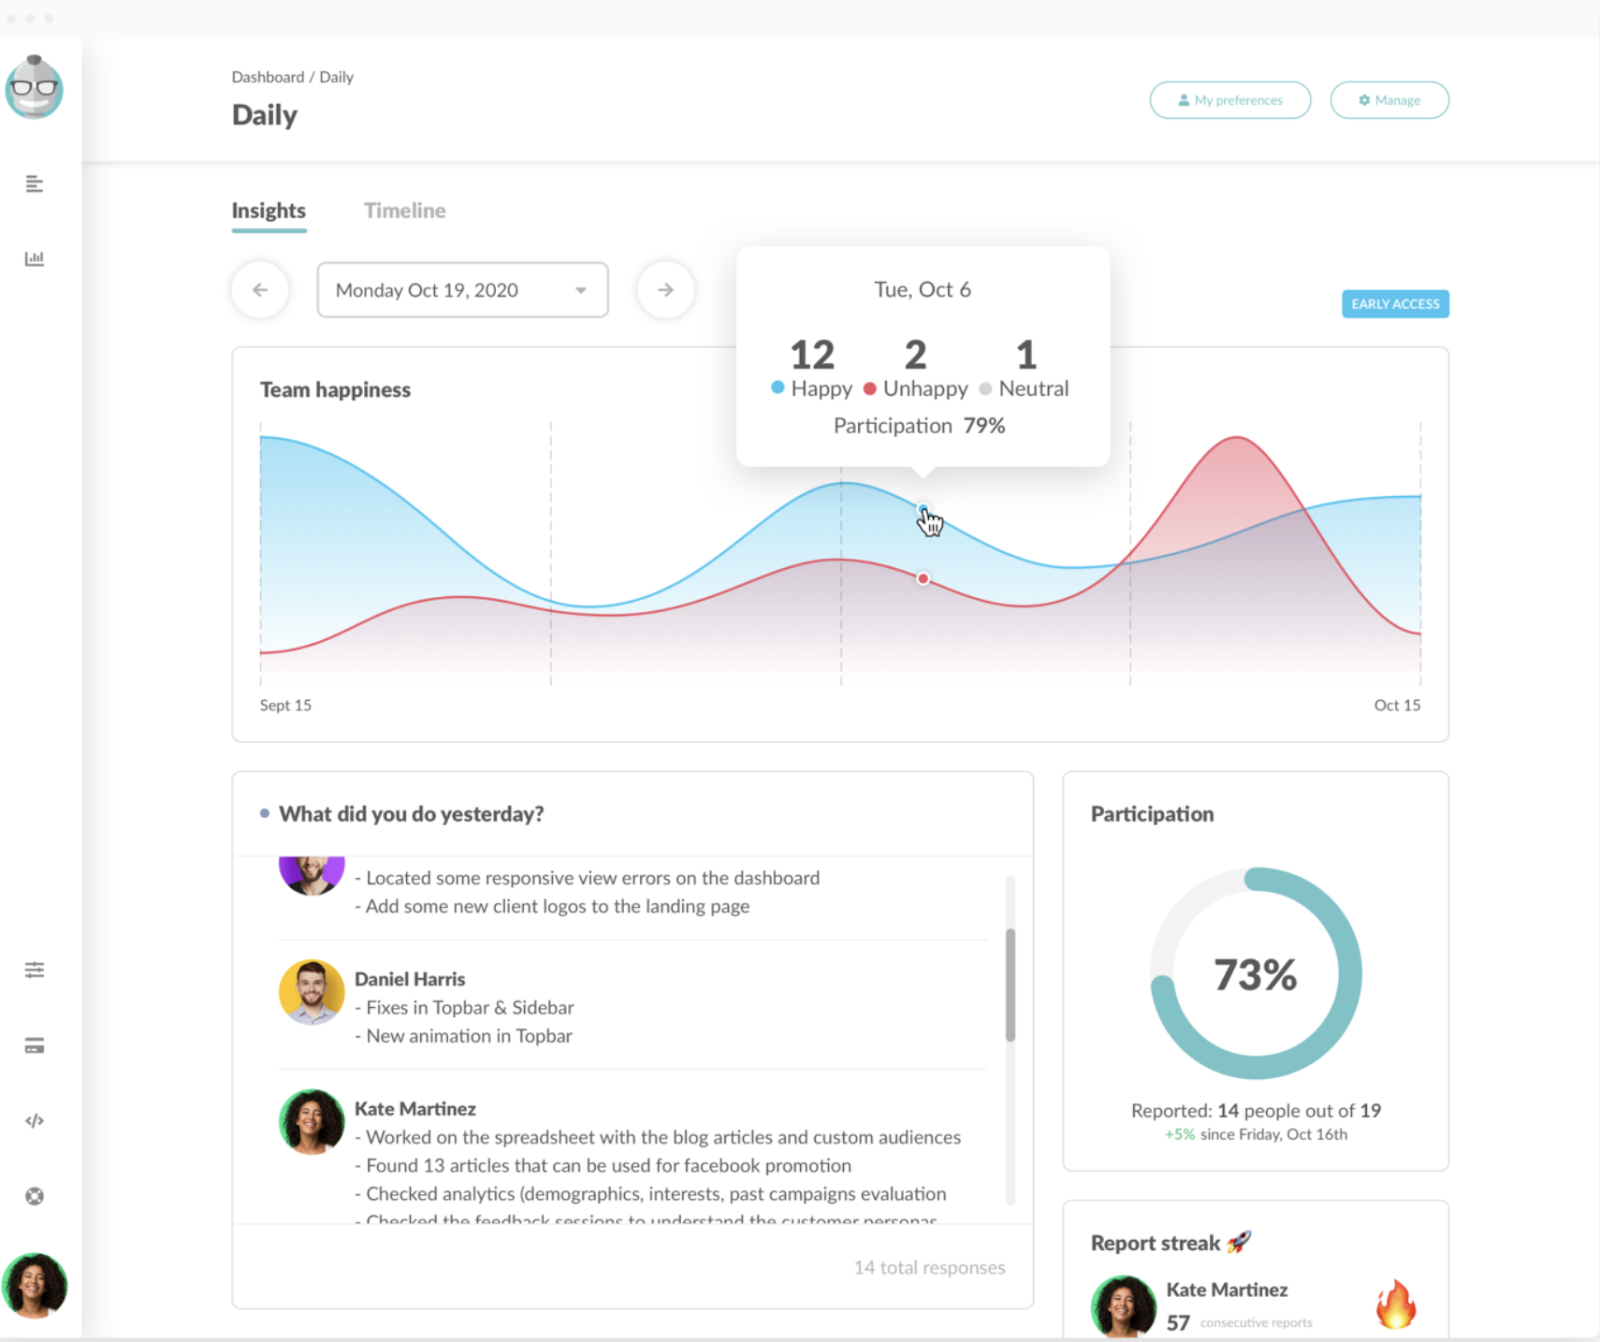 Team happiness can be tracked in the daily insights based on team members responses